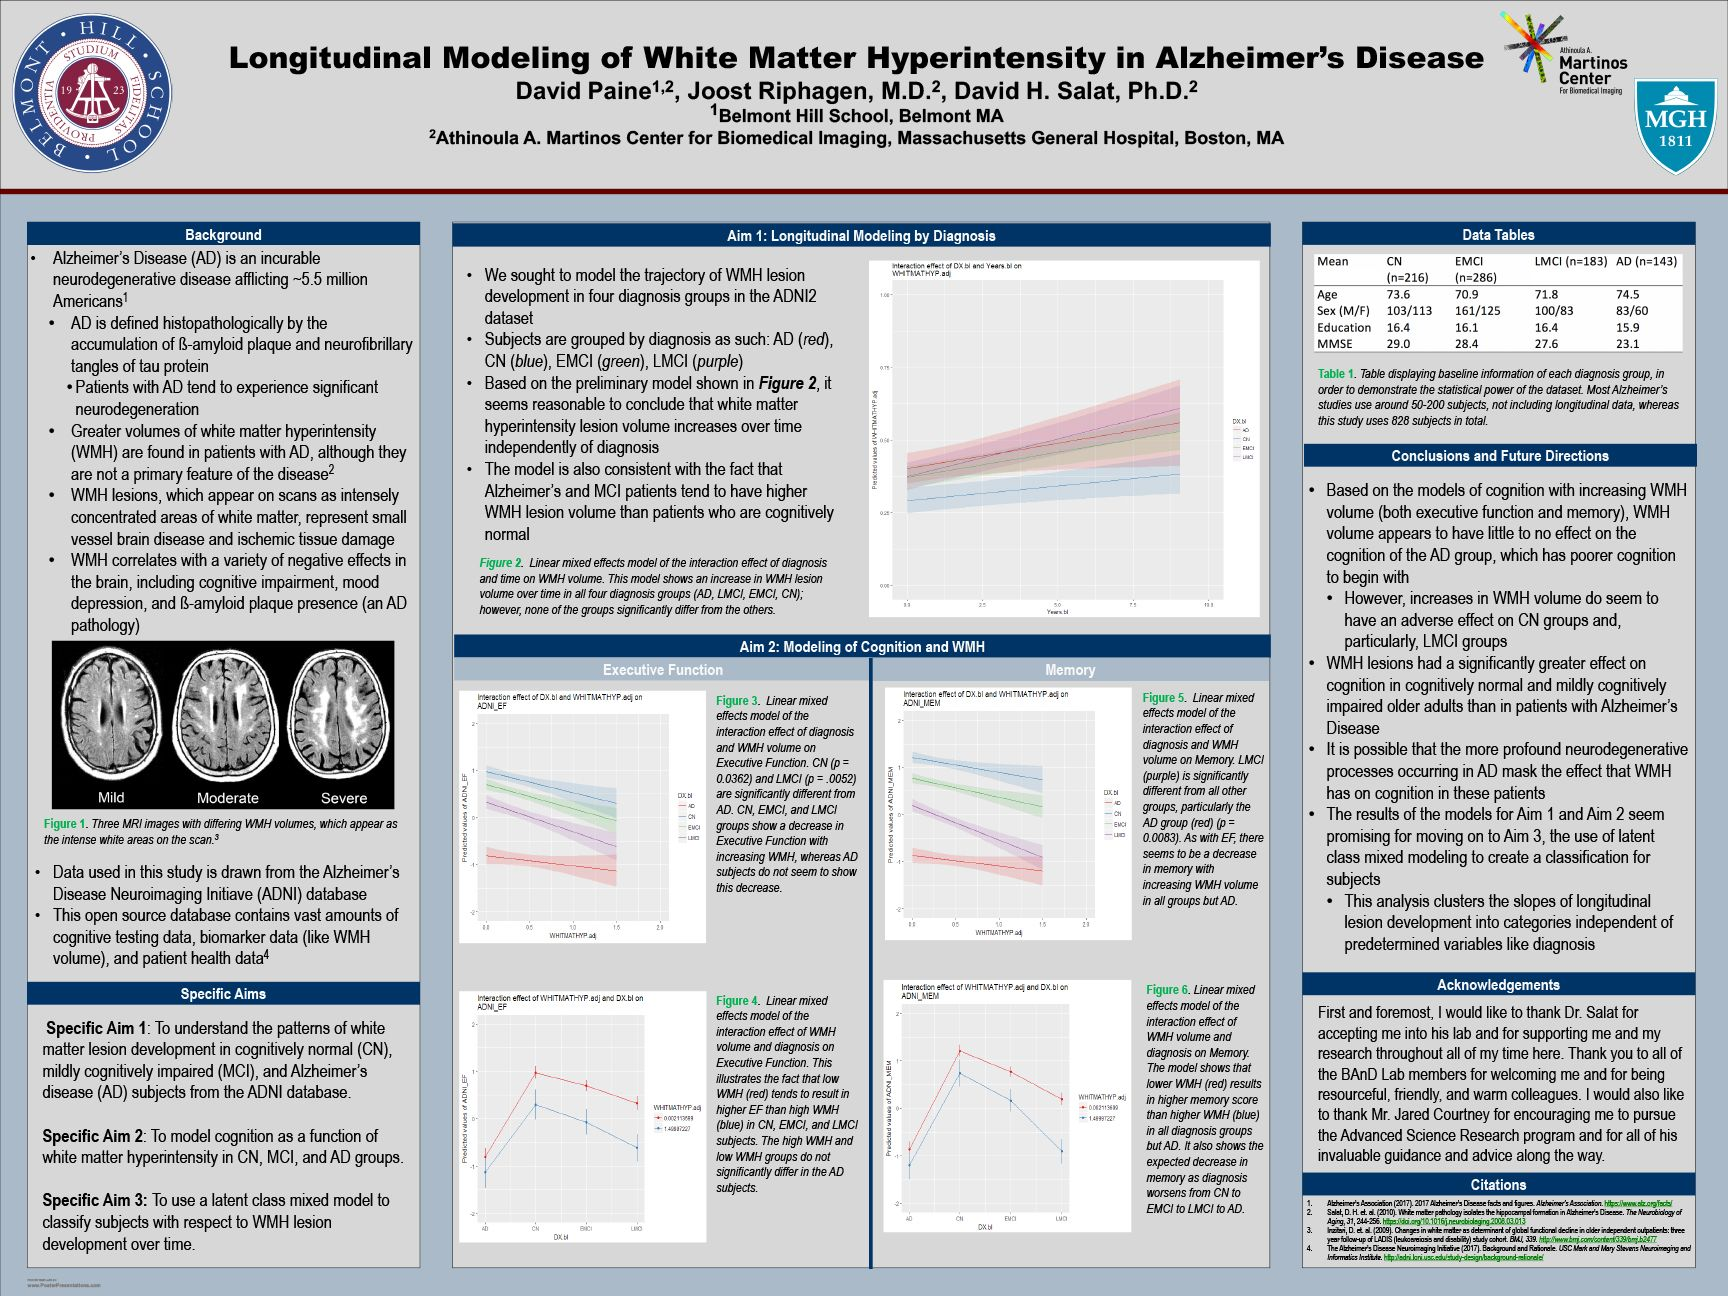 David Paine '18 - Longitudinal Modeling of White Matter Hyperintensity in Alzheimer's Disease